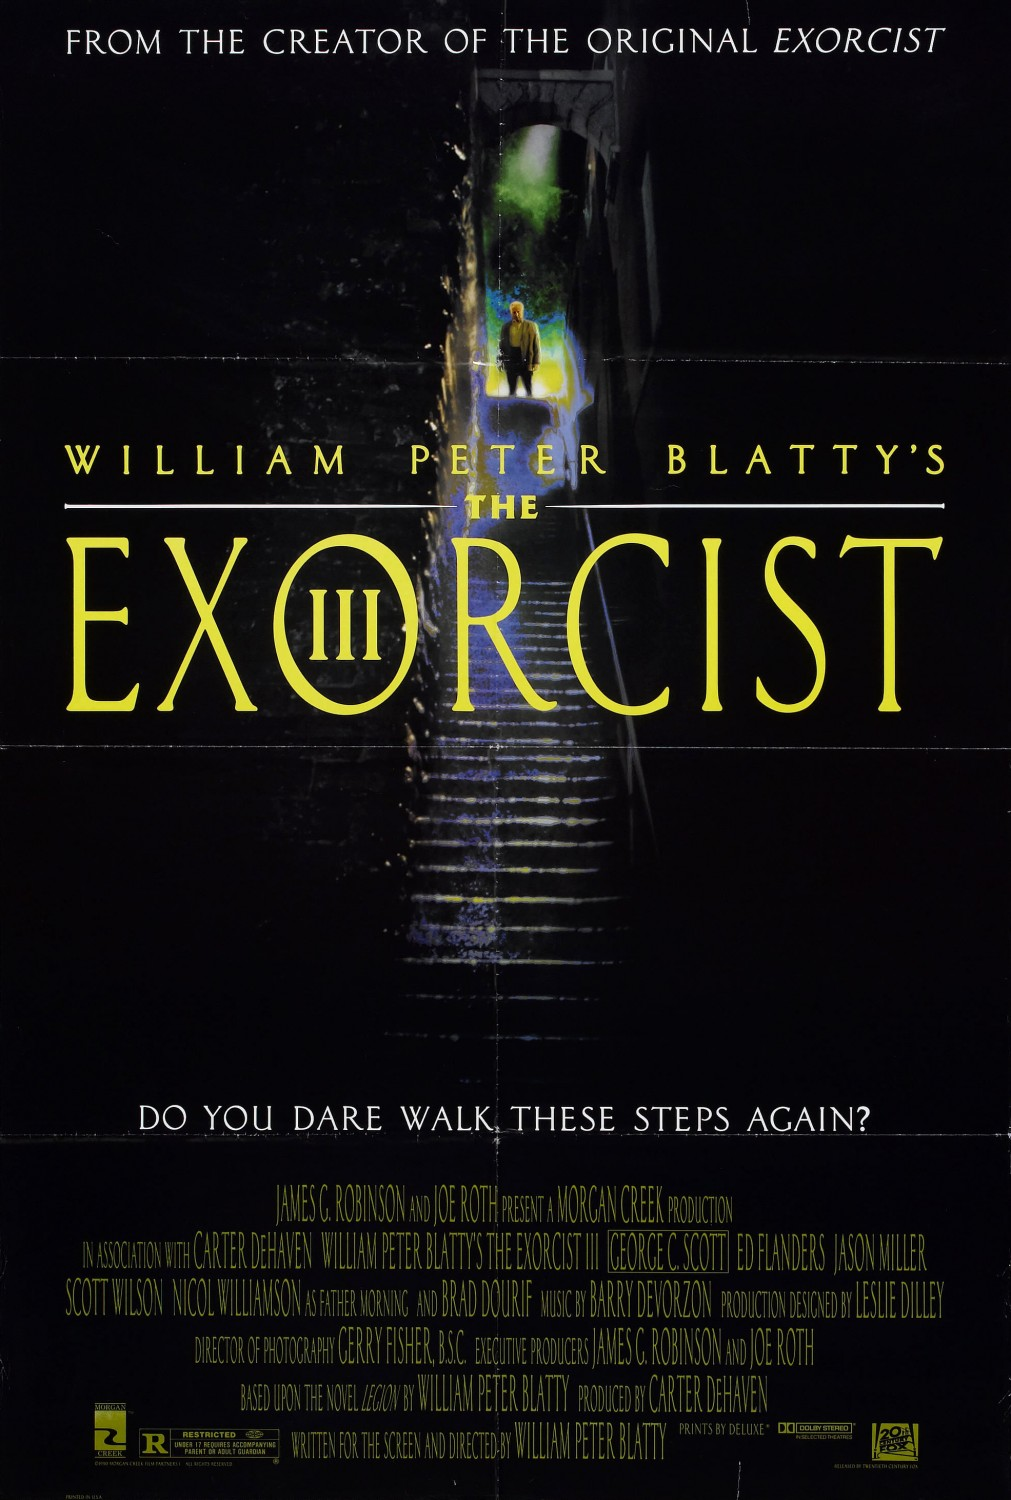 the exorcist william peter blatty free pdf download